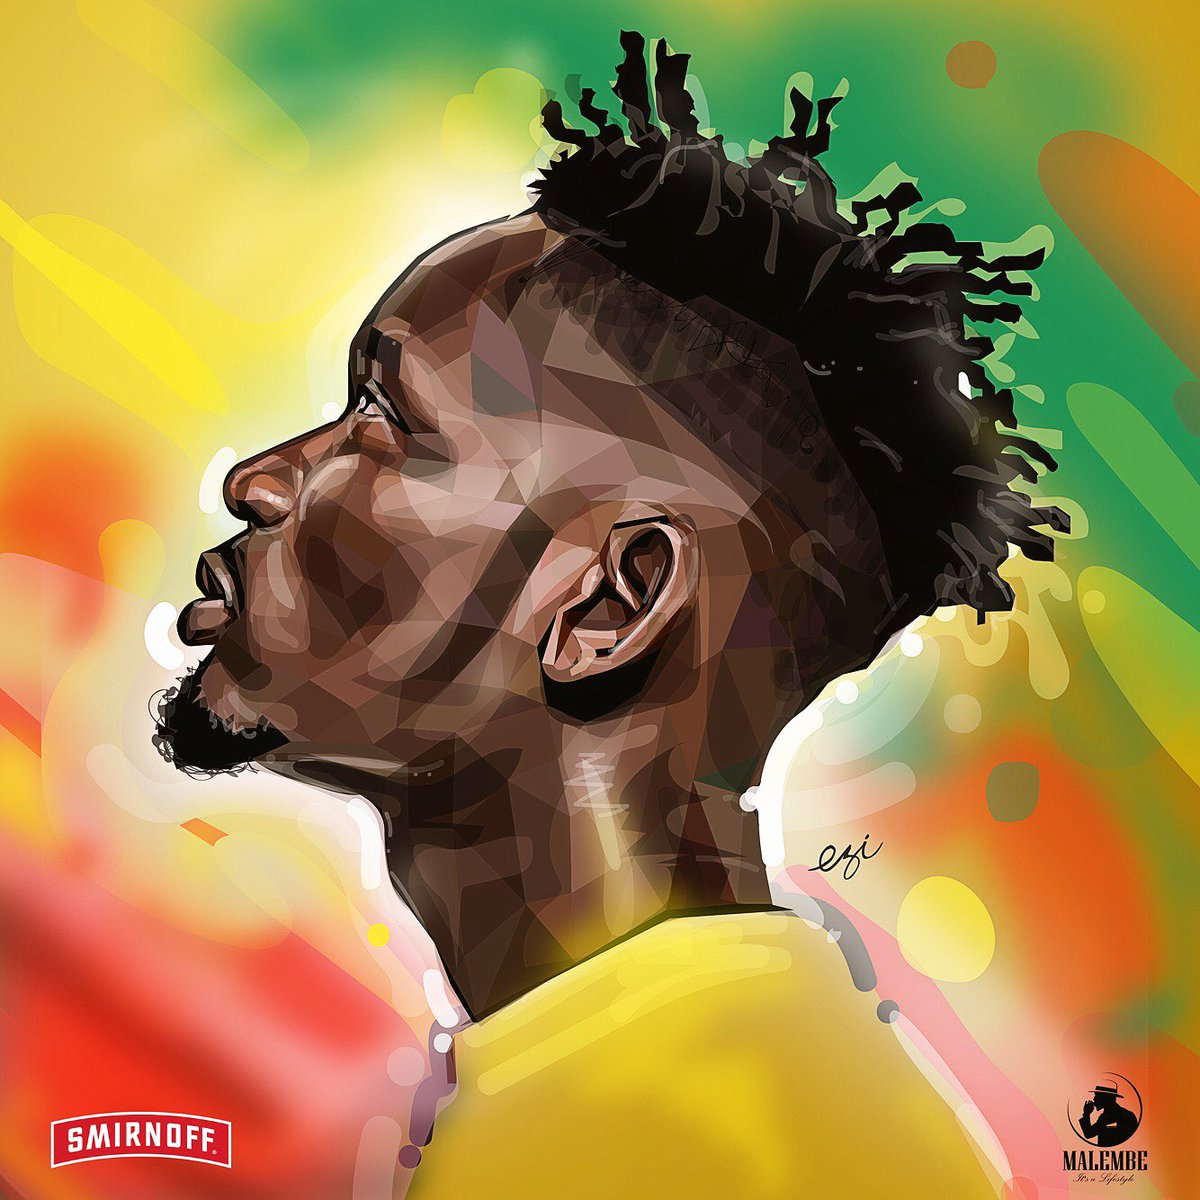 My tribute to @mreazi. A #vector art by yours truly @eziwear. The Eazi and Ezi piece. S/o to @MalembeLife @SmirnoffUganda and @SkyzHotel. #beEzi<br>http://pic.twitter.com/ByF5PagUCu